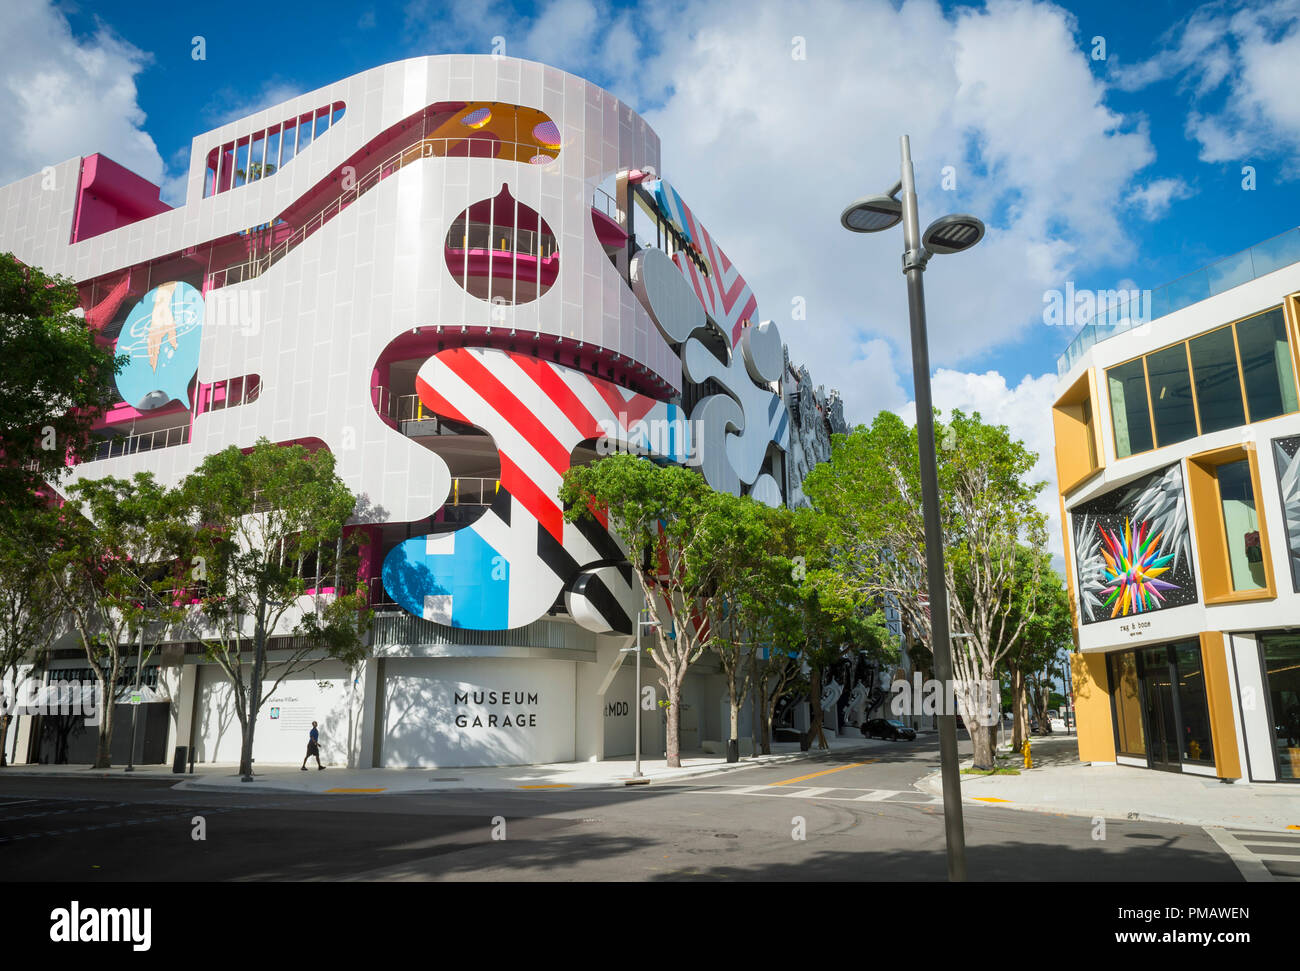 "MIAMI - SEPTEMBER, 2018: The facade of the Museum Garage, an eye-catching example of local ""parkitecture"", at an intersection in the Design District. Stock Photo"